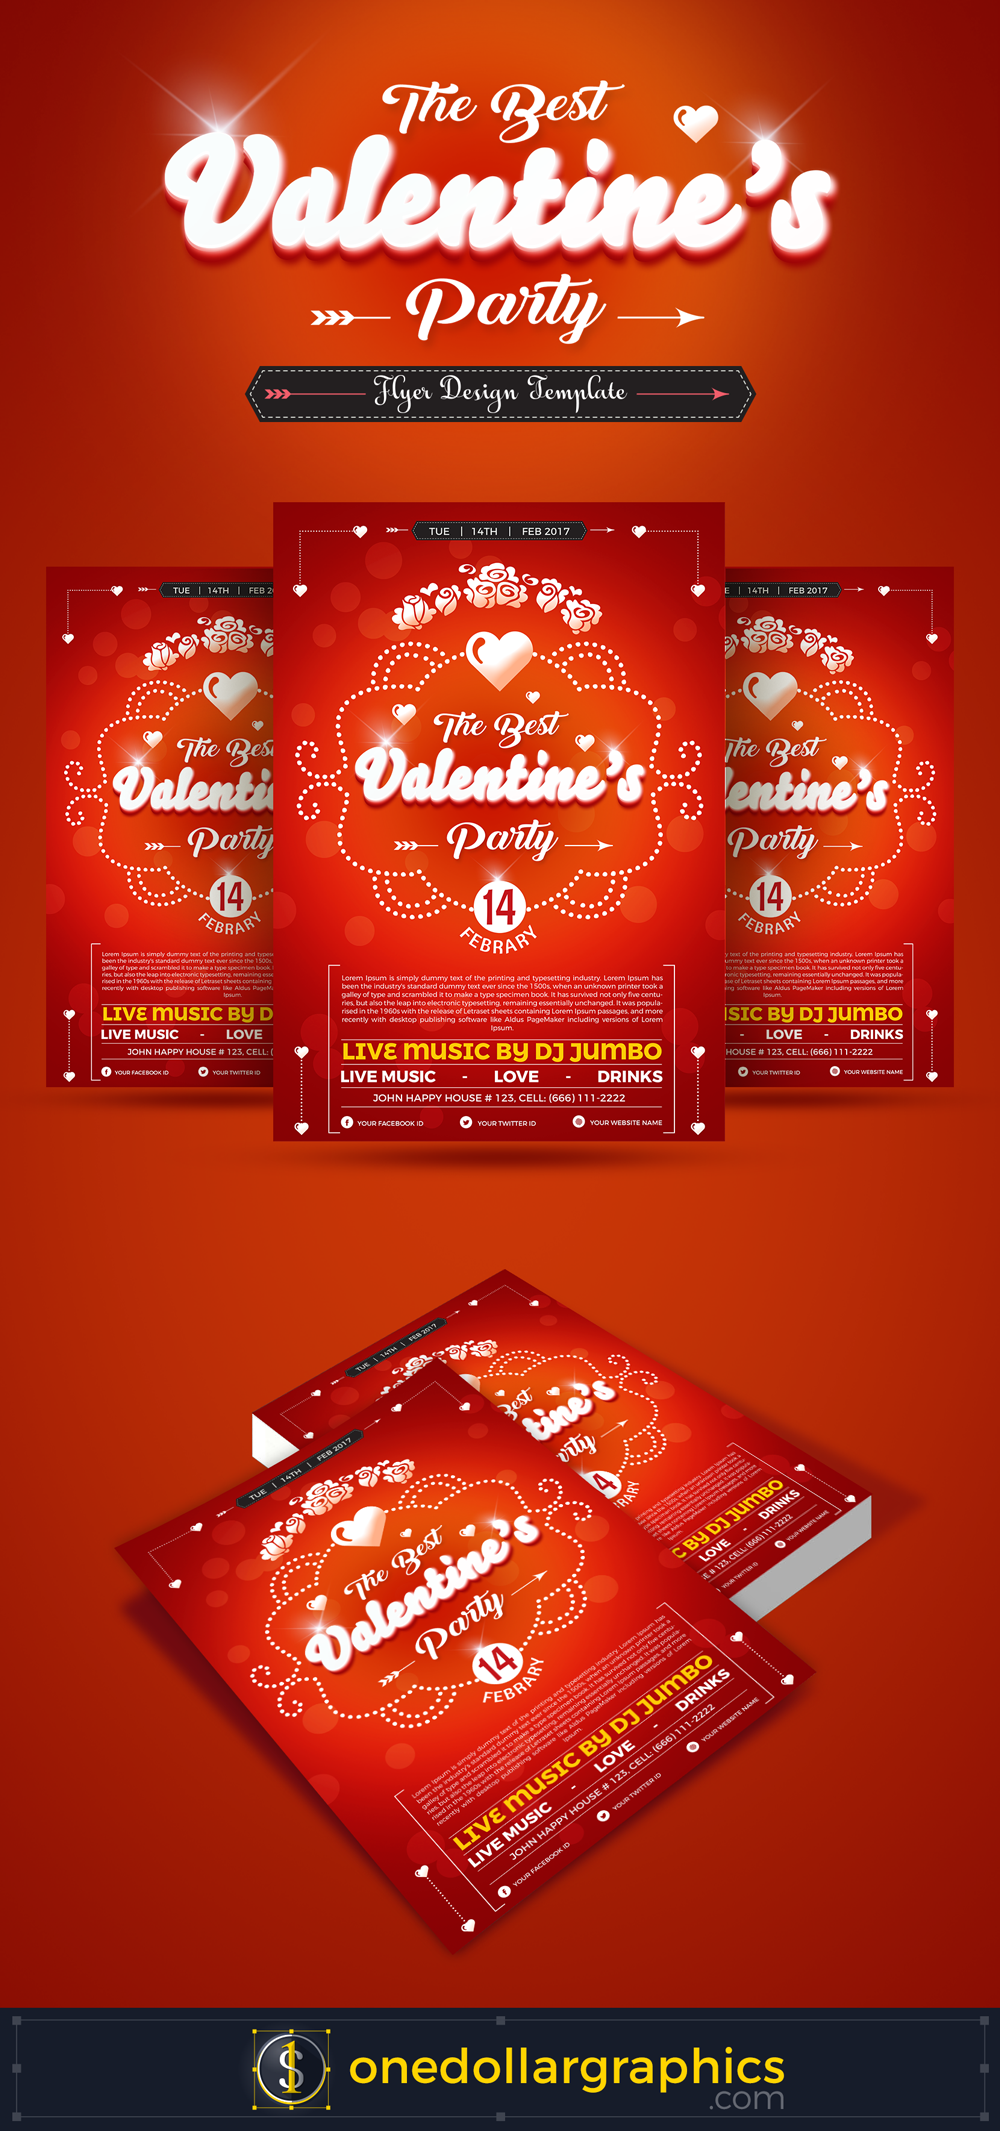 Best-Valentine's-Party-Flyer-Design-Template